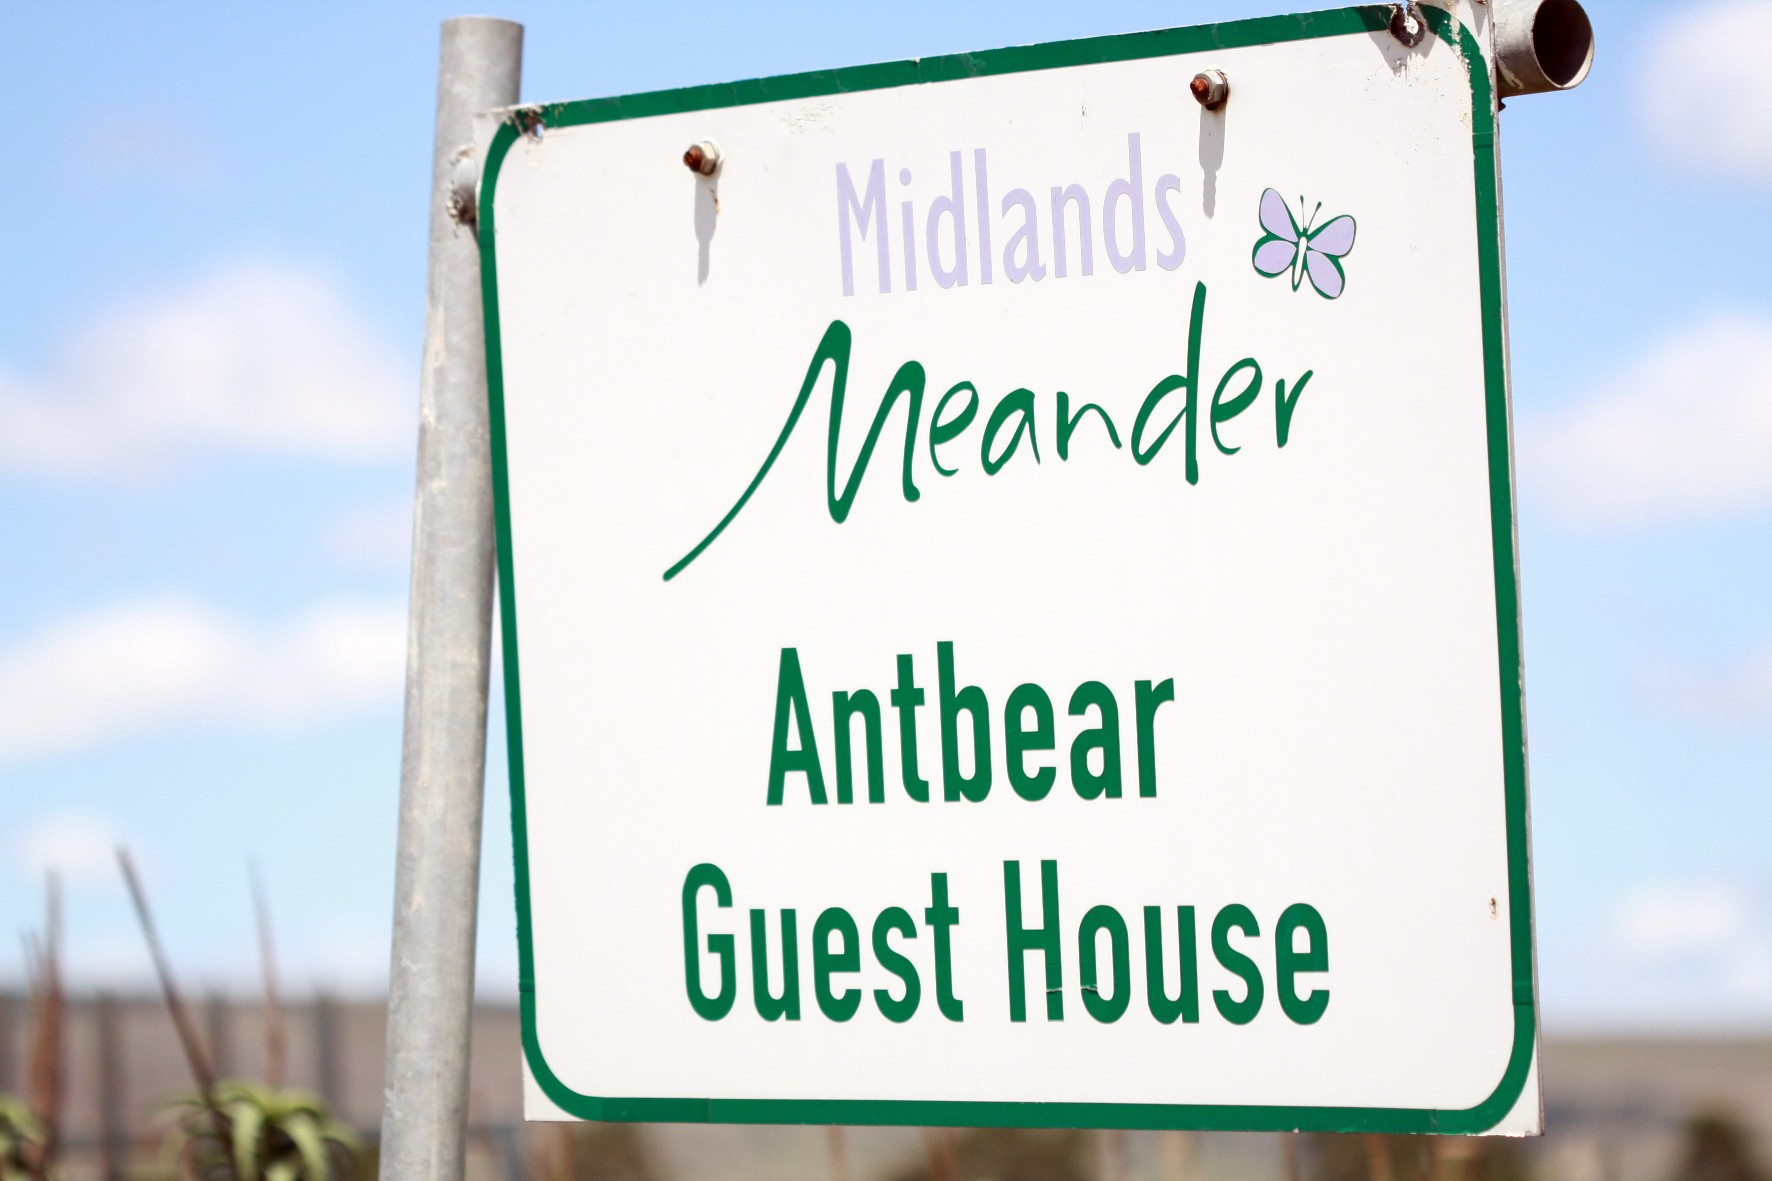 Antbear Lodge